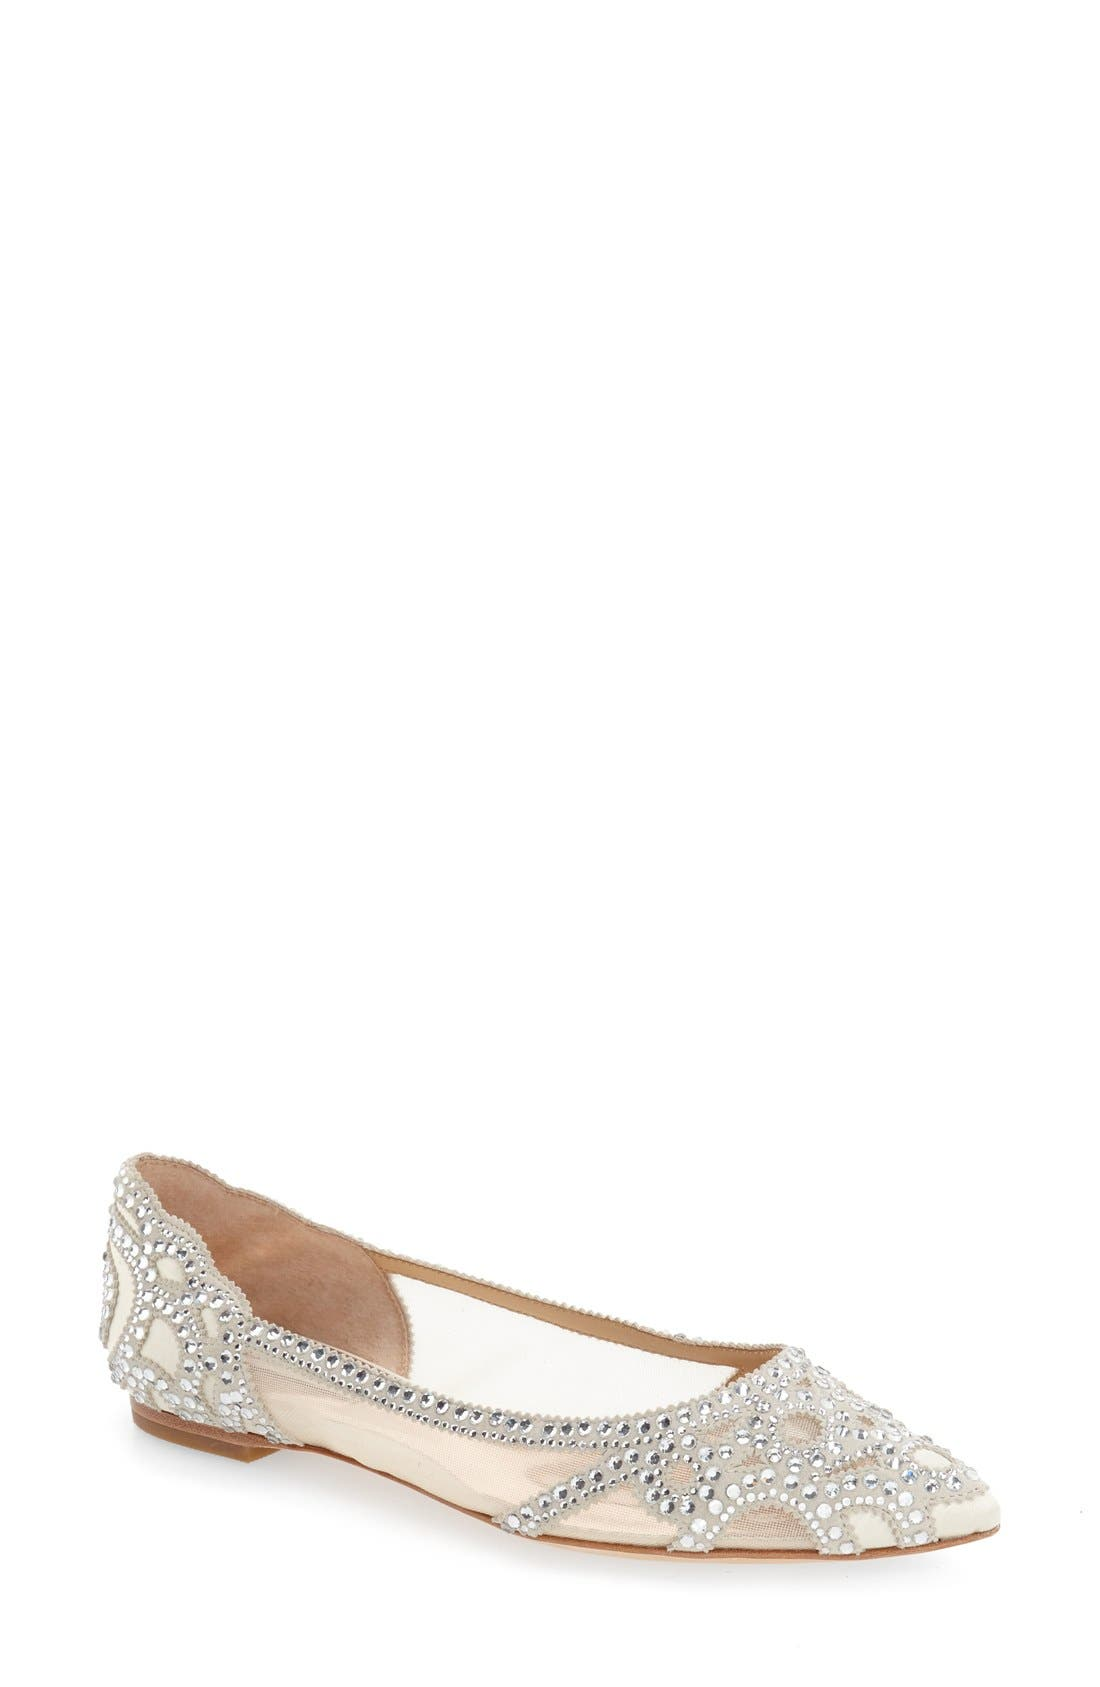 BADGLEY MISCHKA COLLECTION Badgley Mischka Gigi Crystal Pointy Toe Flat, Main, color, IVORY SATIN